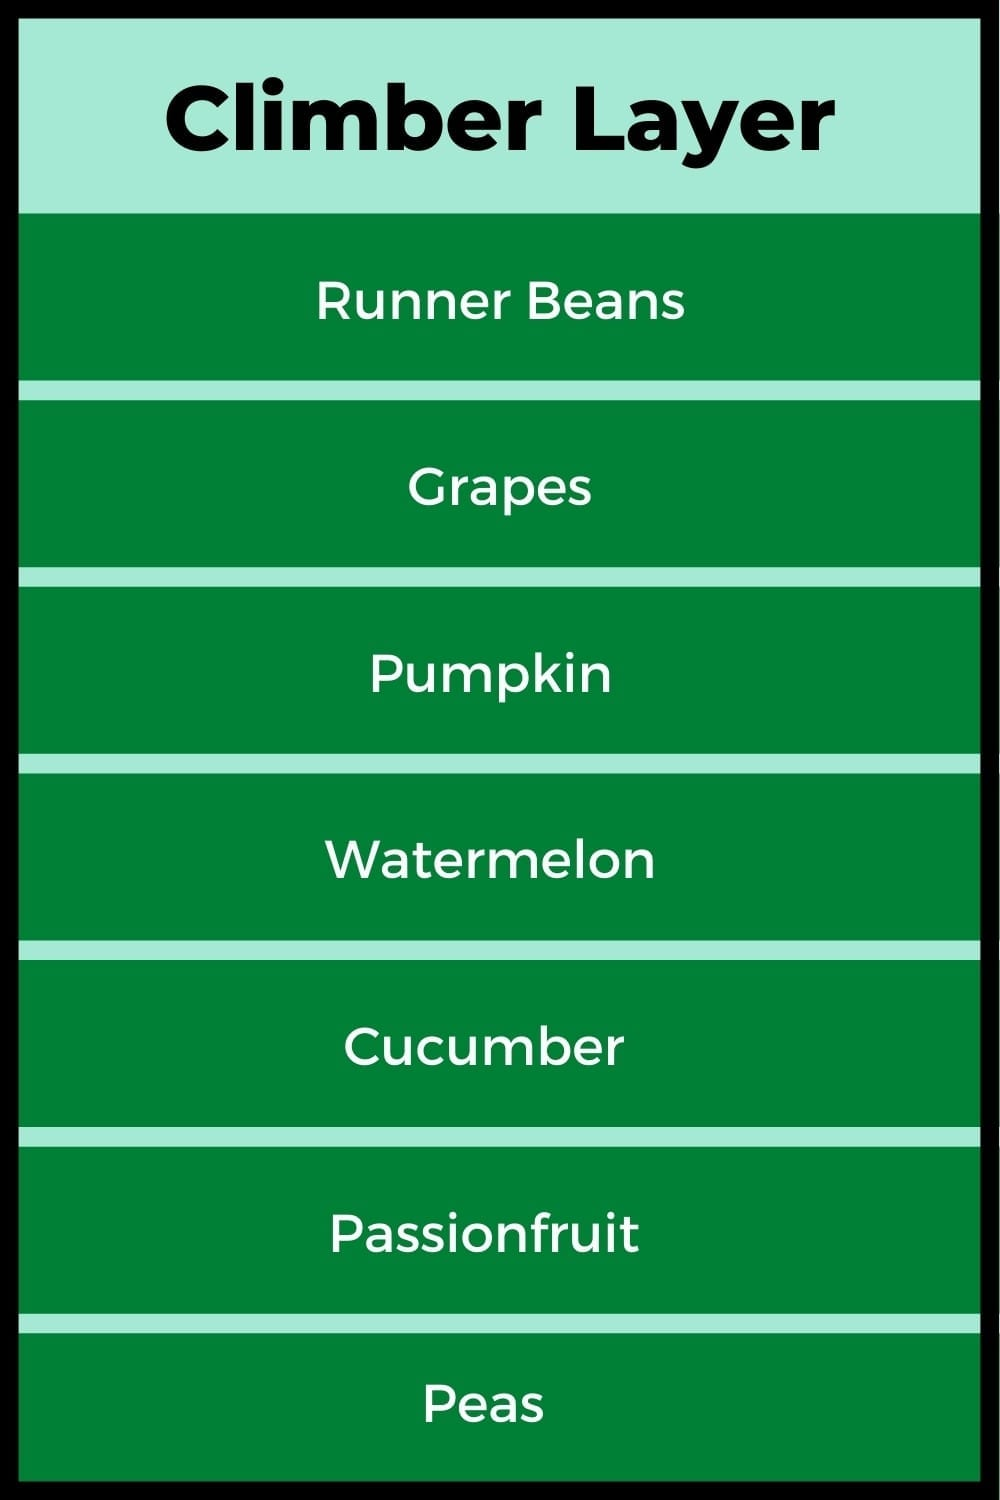 Plants suitable for the Climber Layer